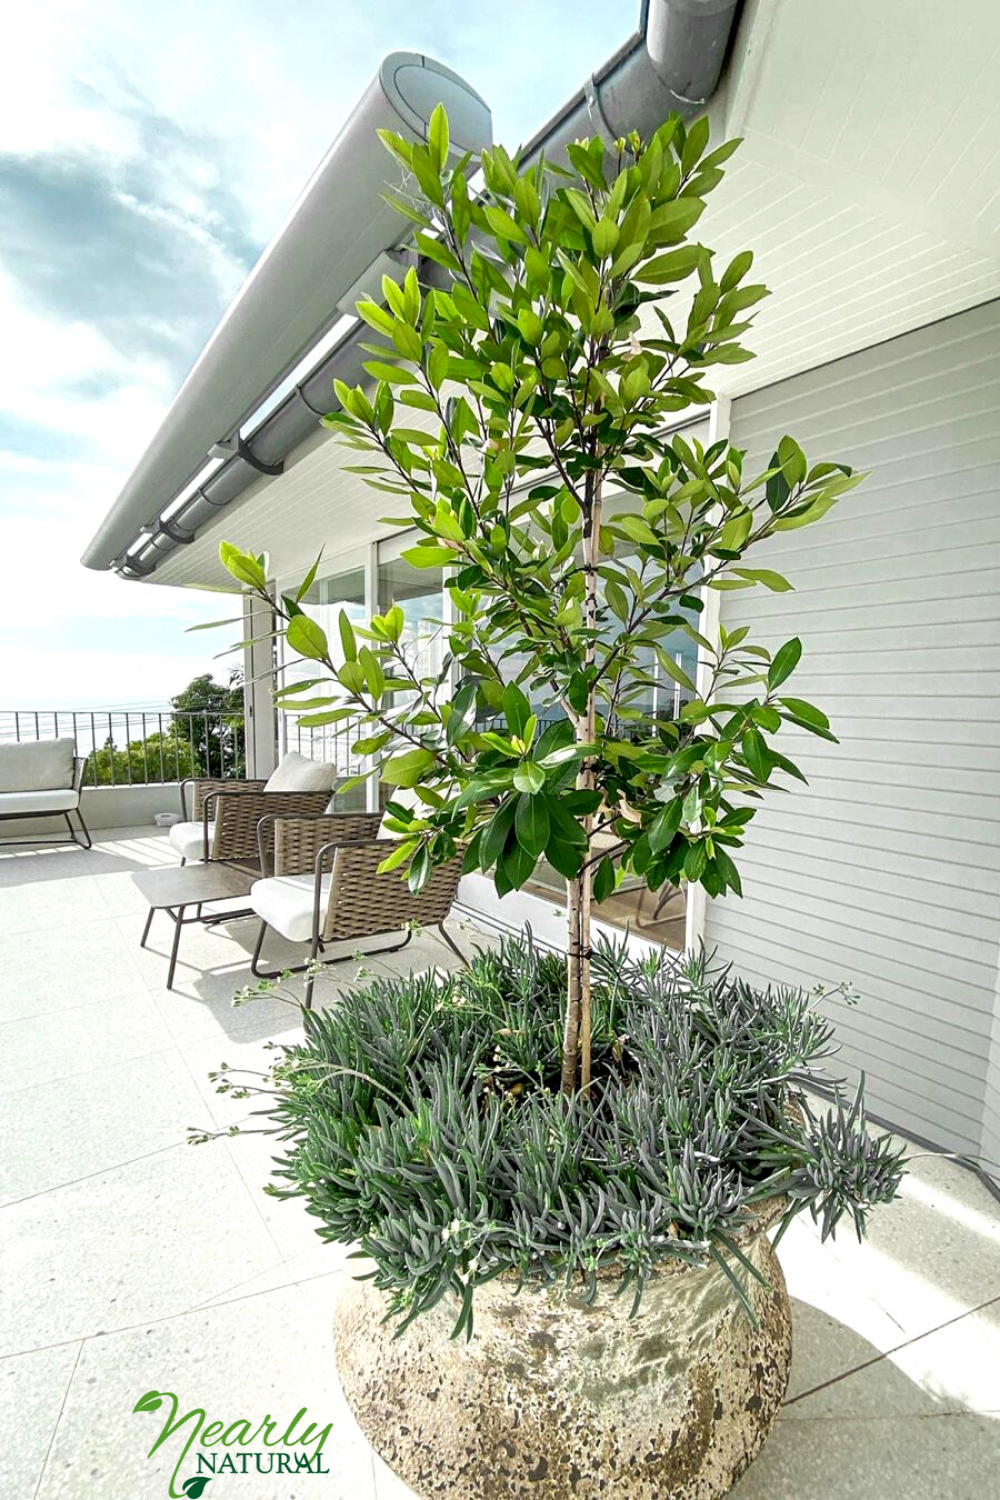 Outdoor Artificial Trees That Will Survive The Summer Heat In 2020 Outdoor Trees Artificial Plants Outdoor Artificial Trees